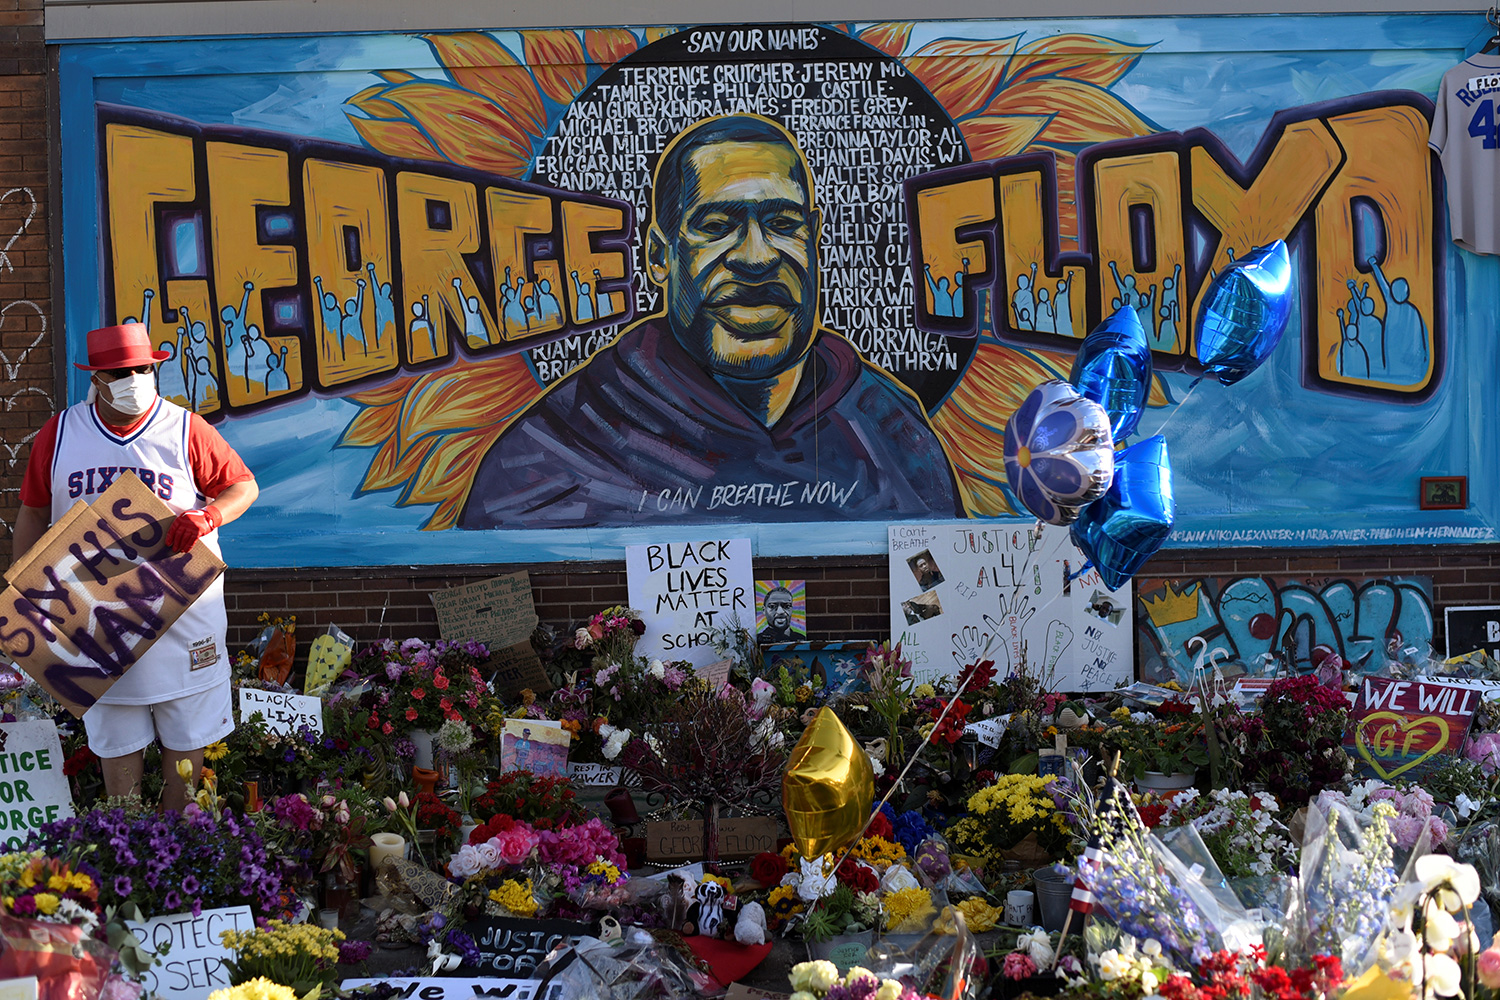 The photo shows a mural to Floyd with lots of flowers and signs laid out in front.